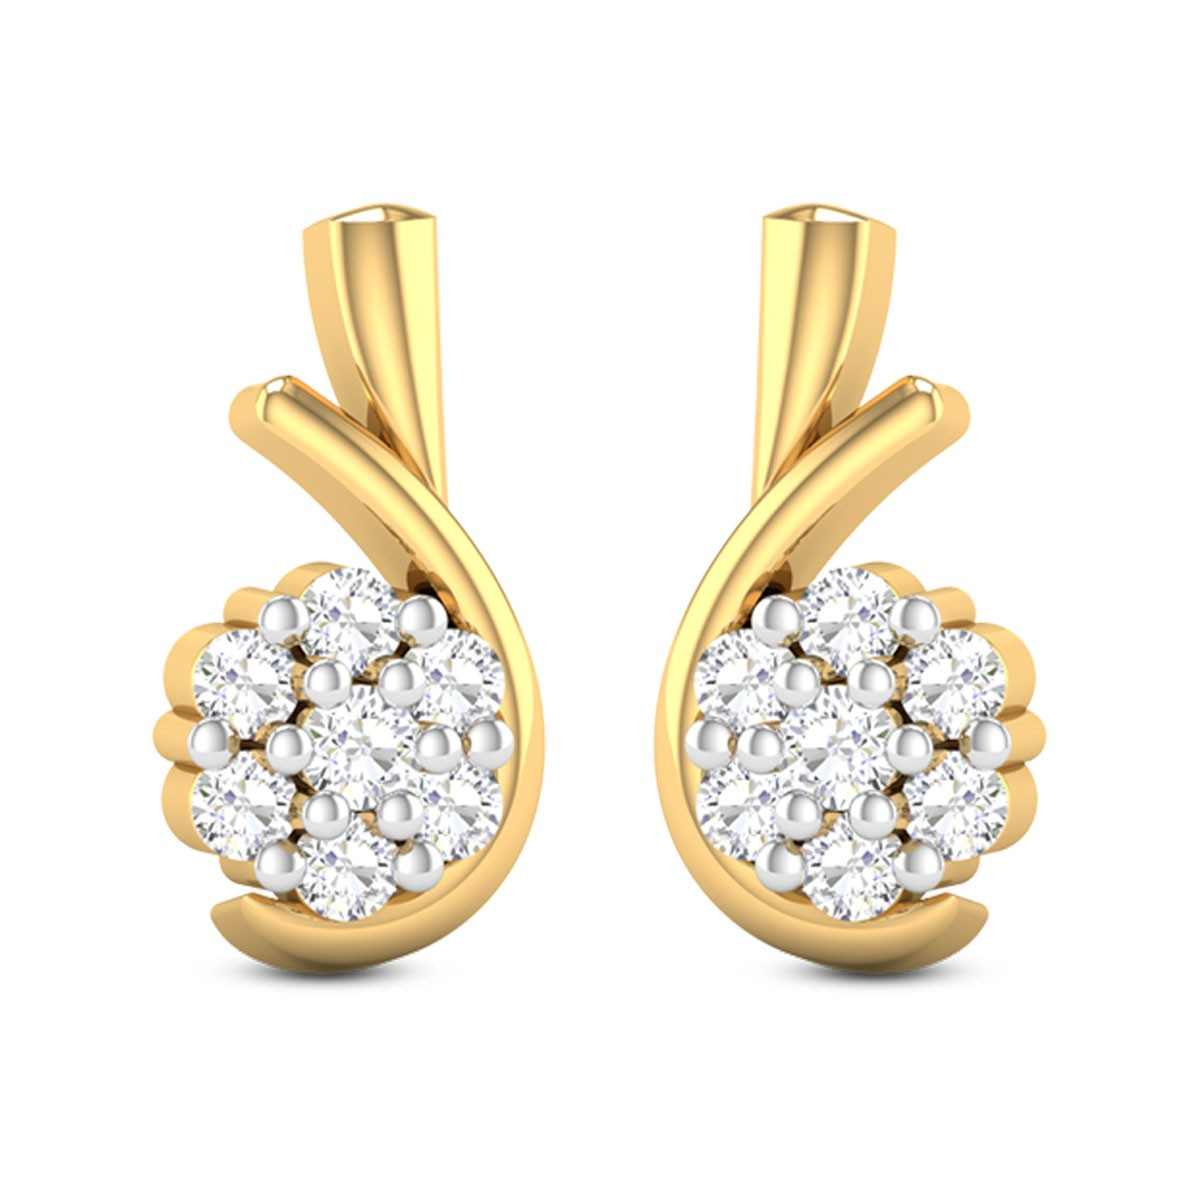 Fawn Diamond Earrings